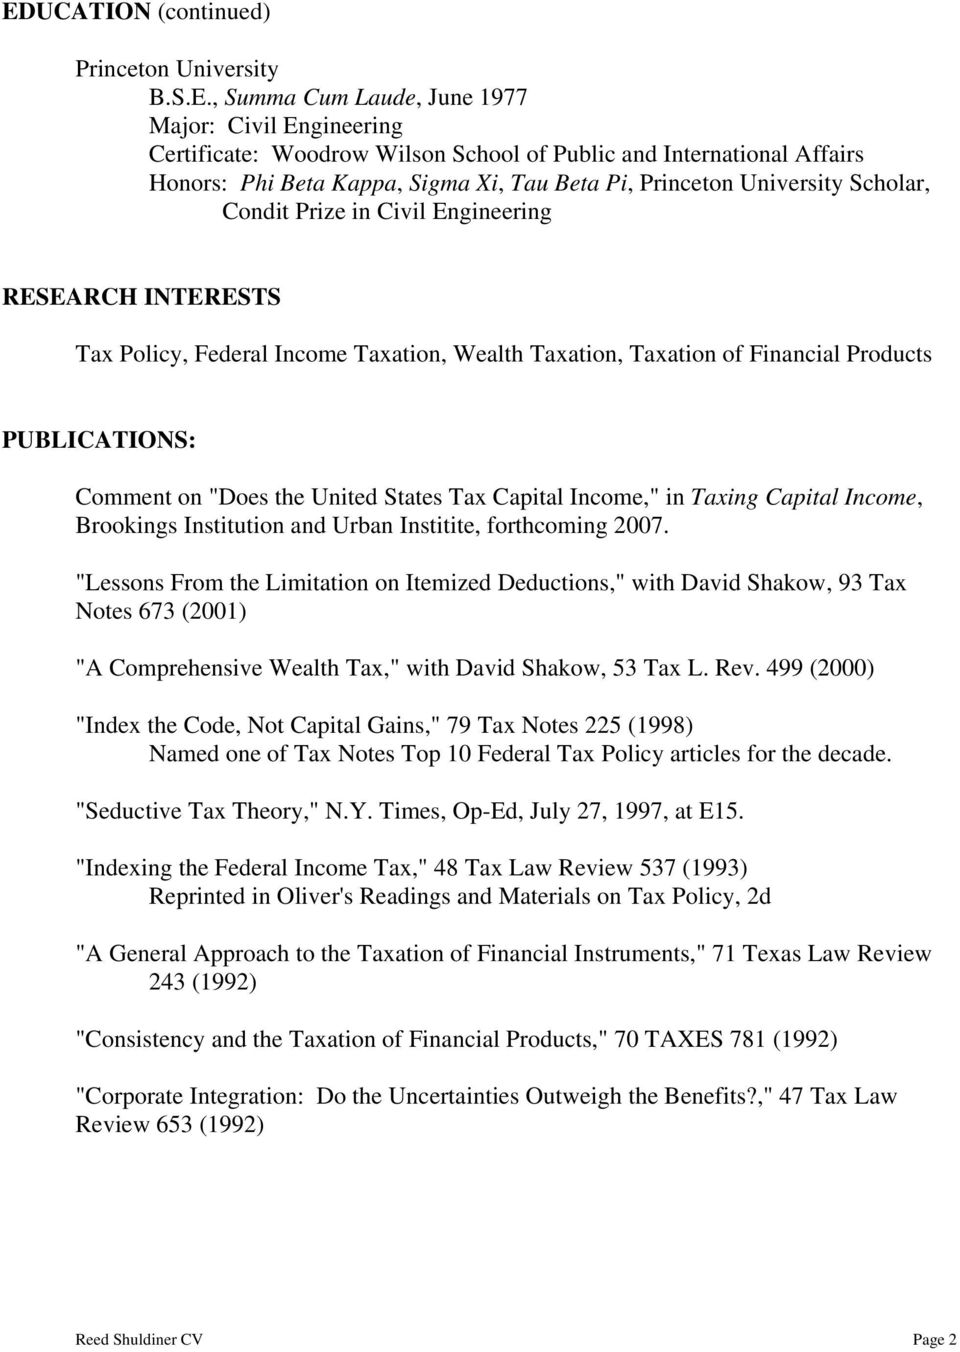 "PUBLICATIONS: Comment on ""Does the United States Tax Capital Income,"" in Taxing Capital Income, Brookings Institution and Urban Institite, forthcoming 2007."